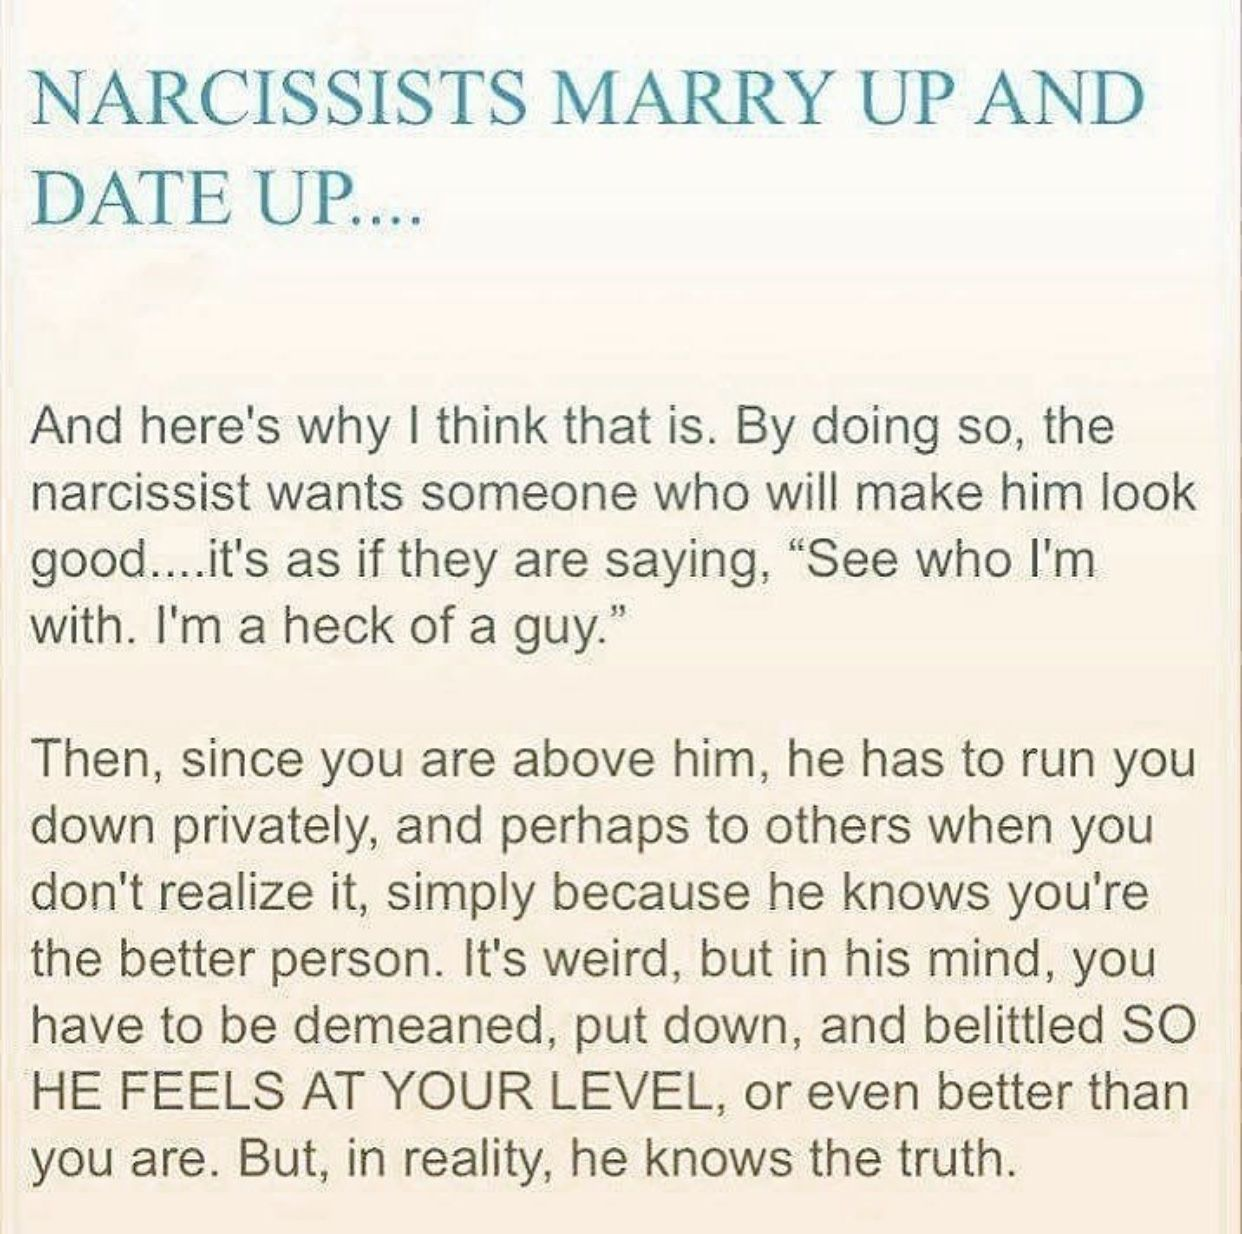 How to recover from dating a narcissist